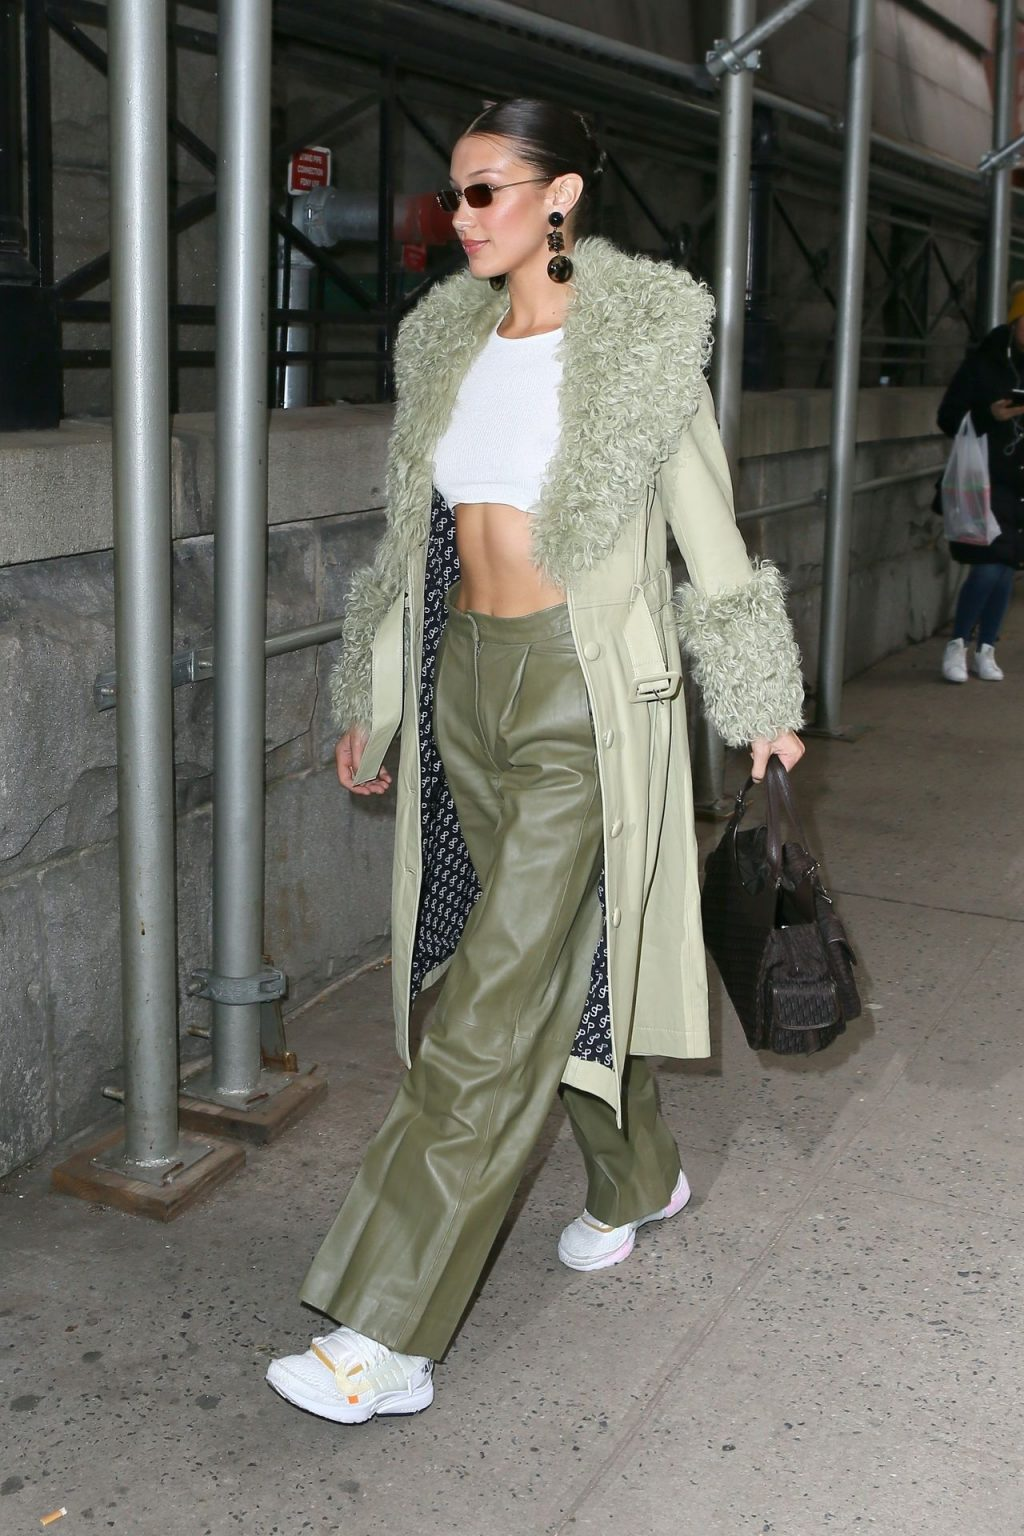 Bella Hadid See through The Fappening Blog 17 1024x1536 - Braless Bella Hadid Arrives at the Park Avenue Armory for the Marc Jacobs Fashion Show (59 Photos)